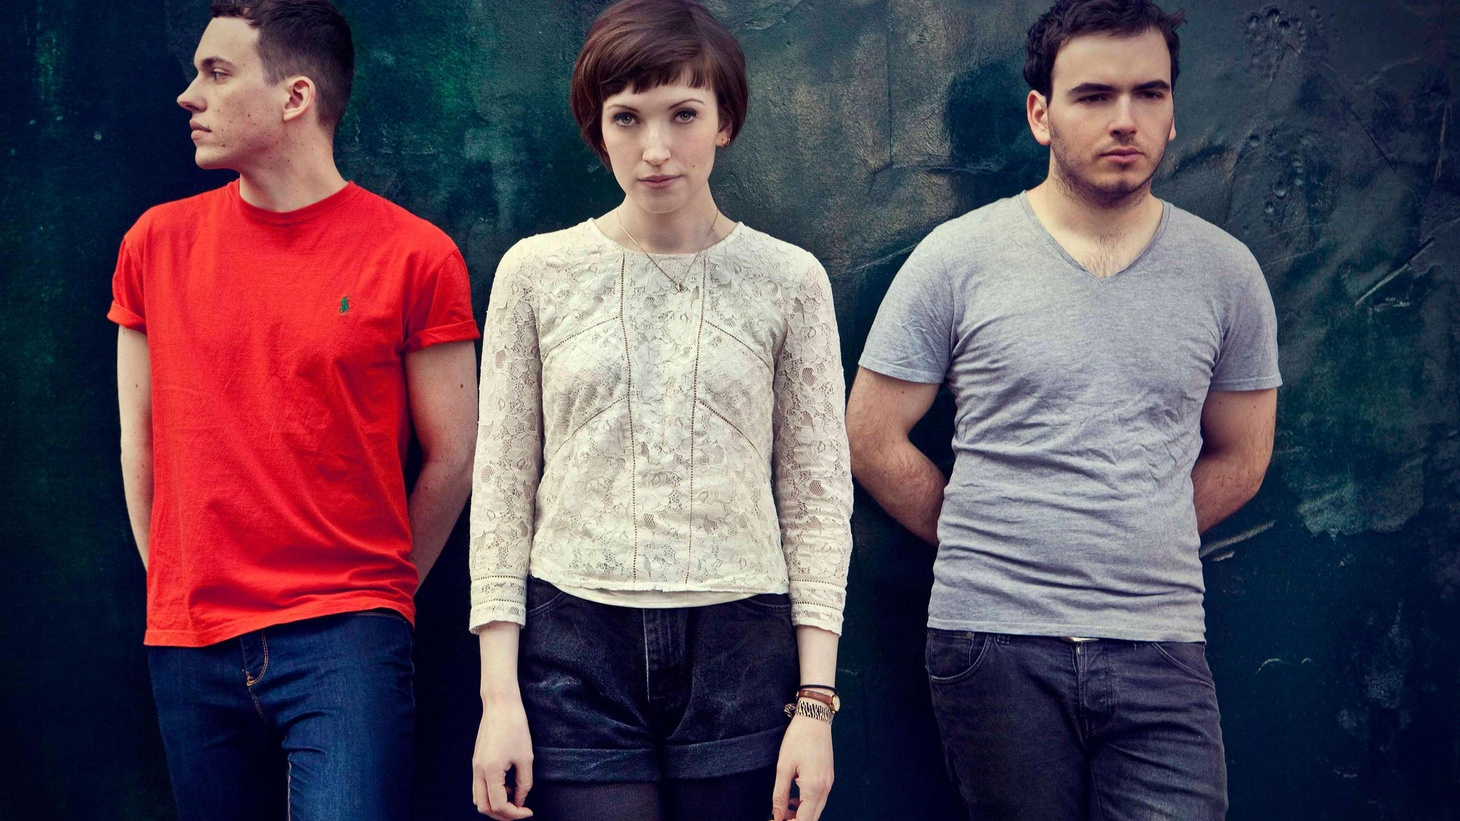 UK trio Daughter was a smash at SXSW and conjure ethereal songs that may cause a heart to flutter...